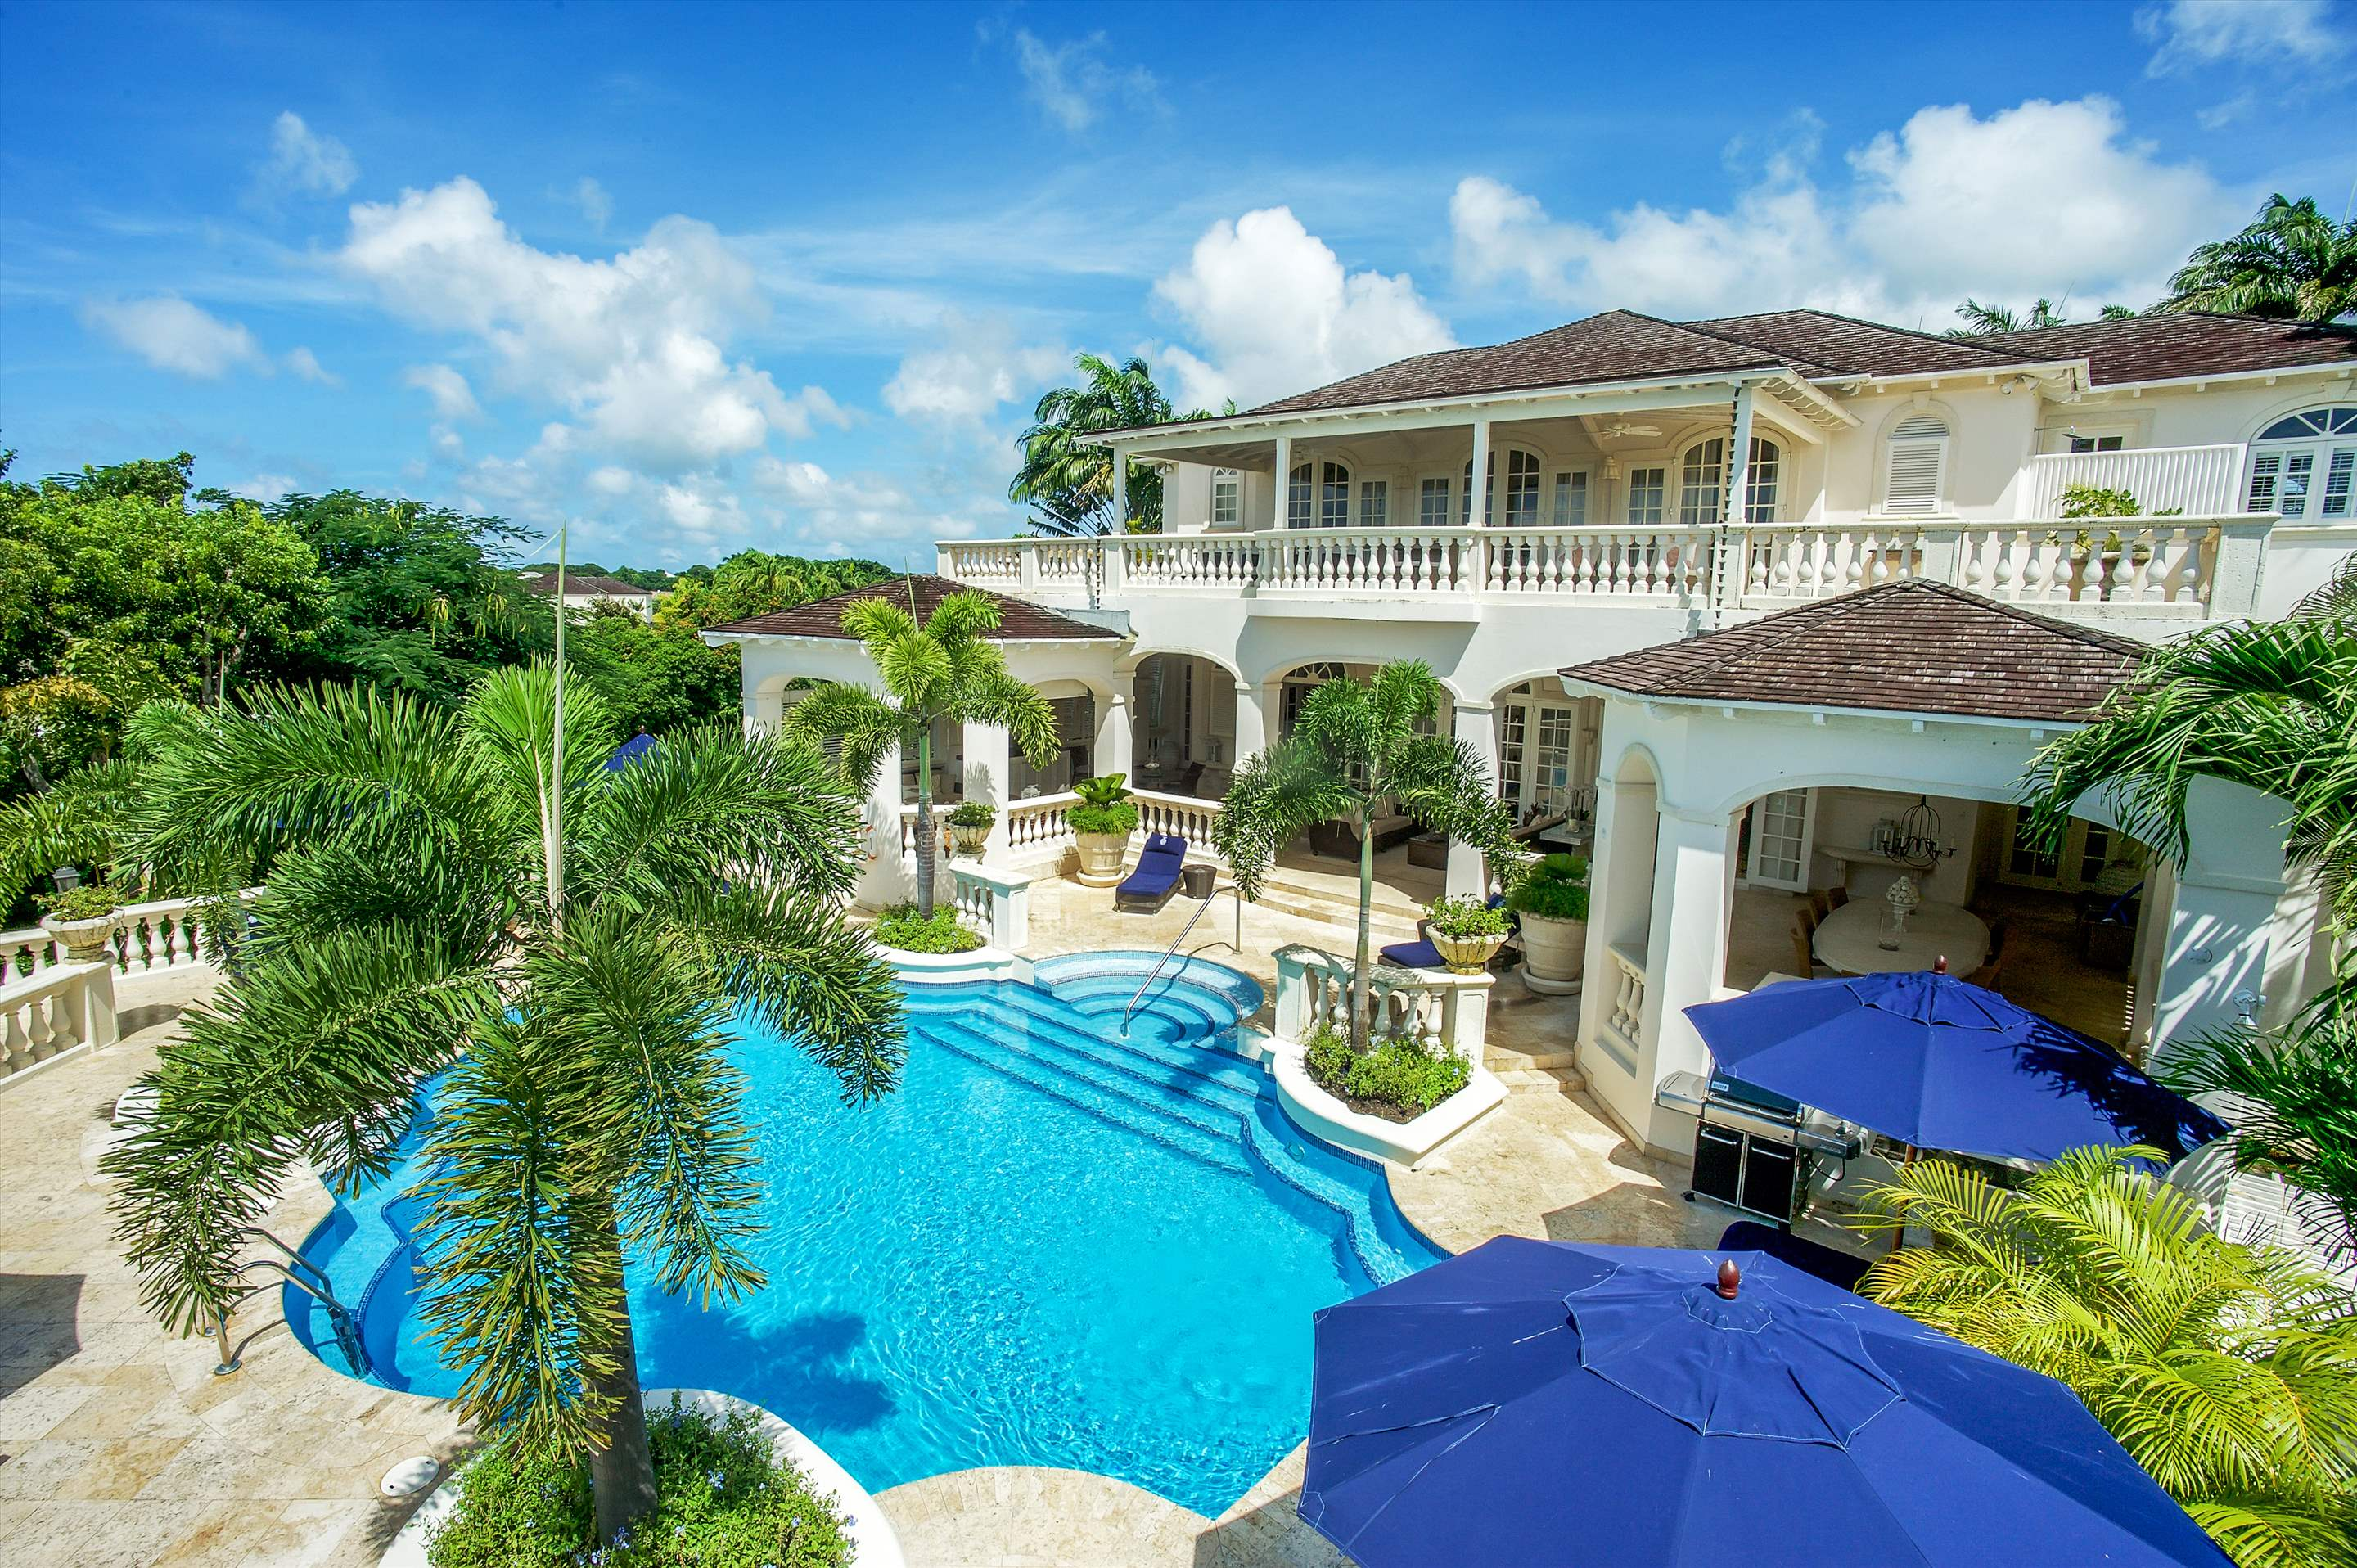 Plantation House, Royal Westmoreland, 6 bedroom, 6 bedroom villa in St. James & West Coast, Barbados Photo #9